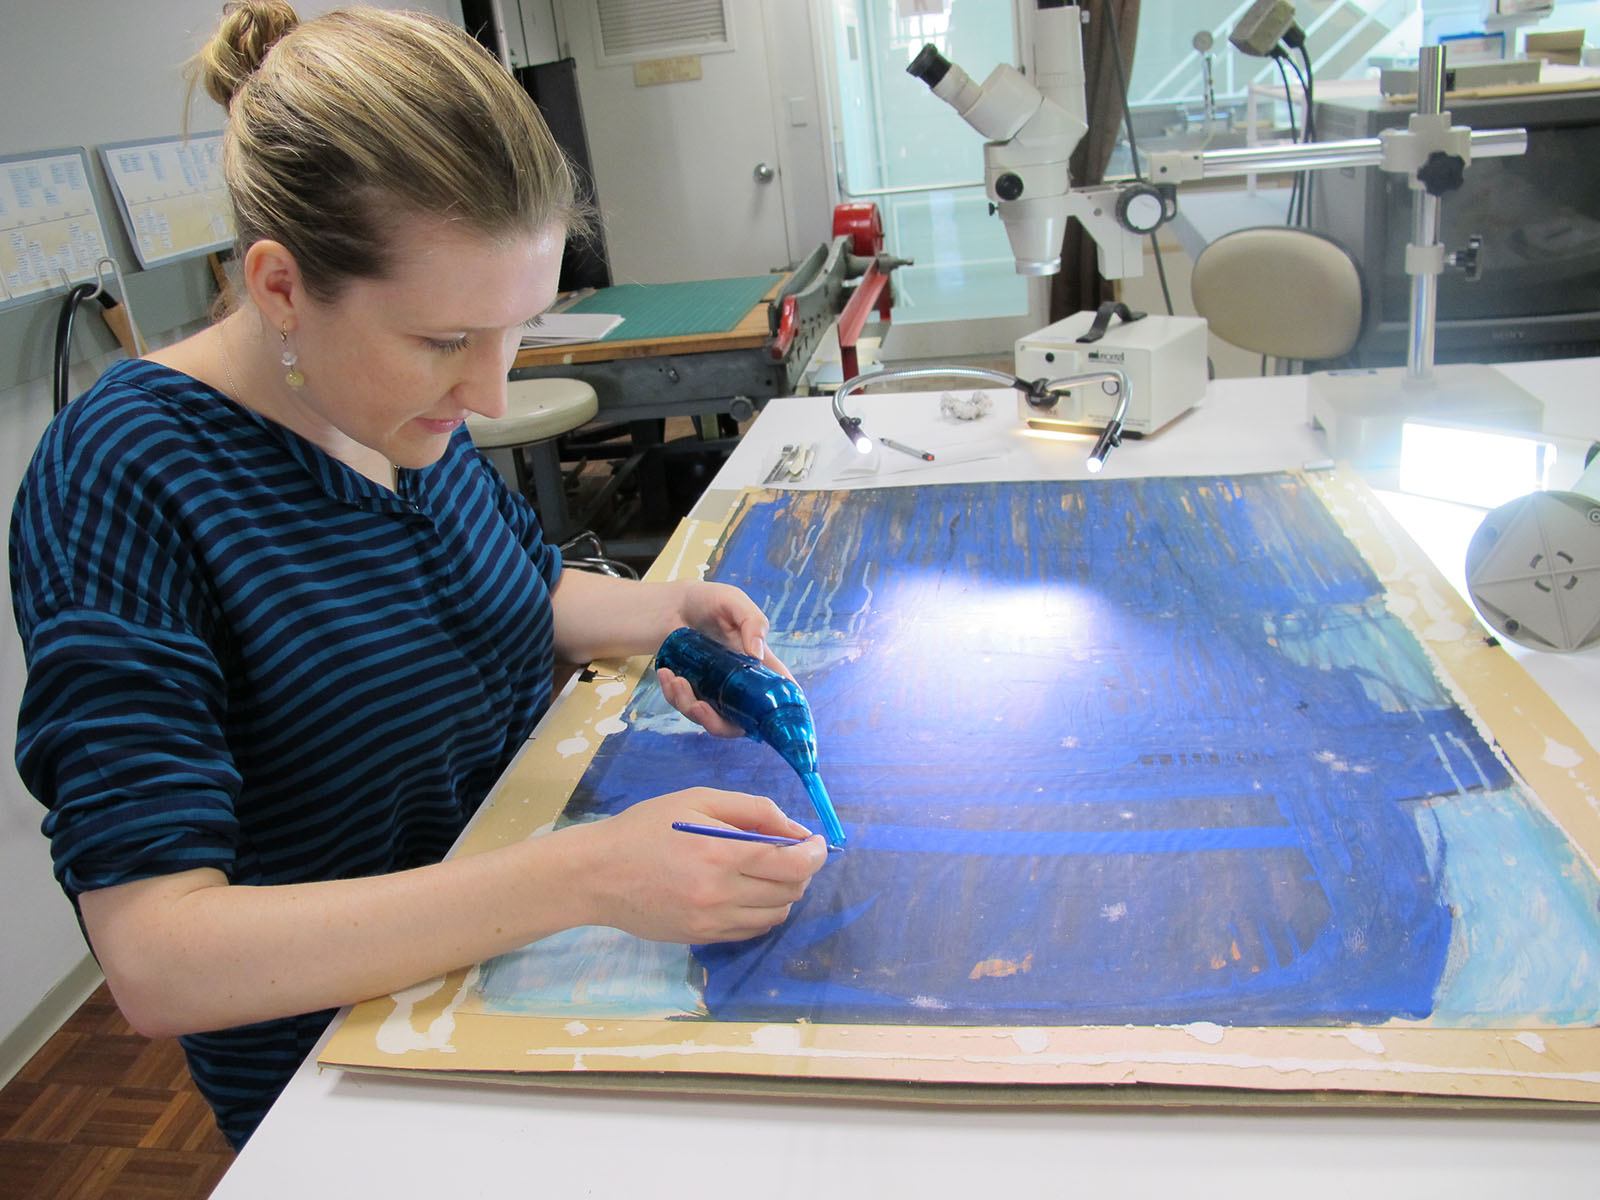 2012-2013 Dedalus Fellow in Modern and Contemporary Conservation, Amy Hughes, using a hand held vacuum and brush to clean the surface of a 1964 painting on paper by abstract expressionist Lester Johnson.